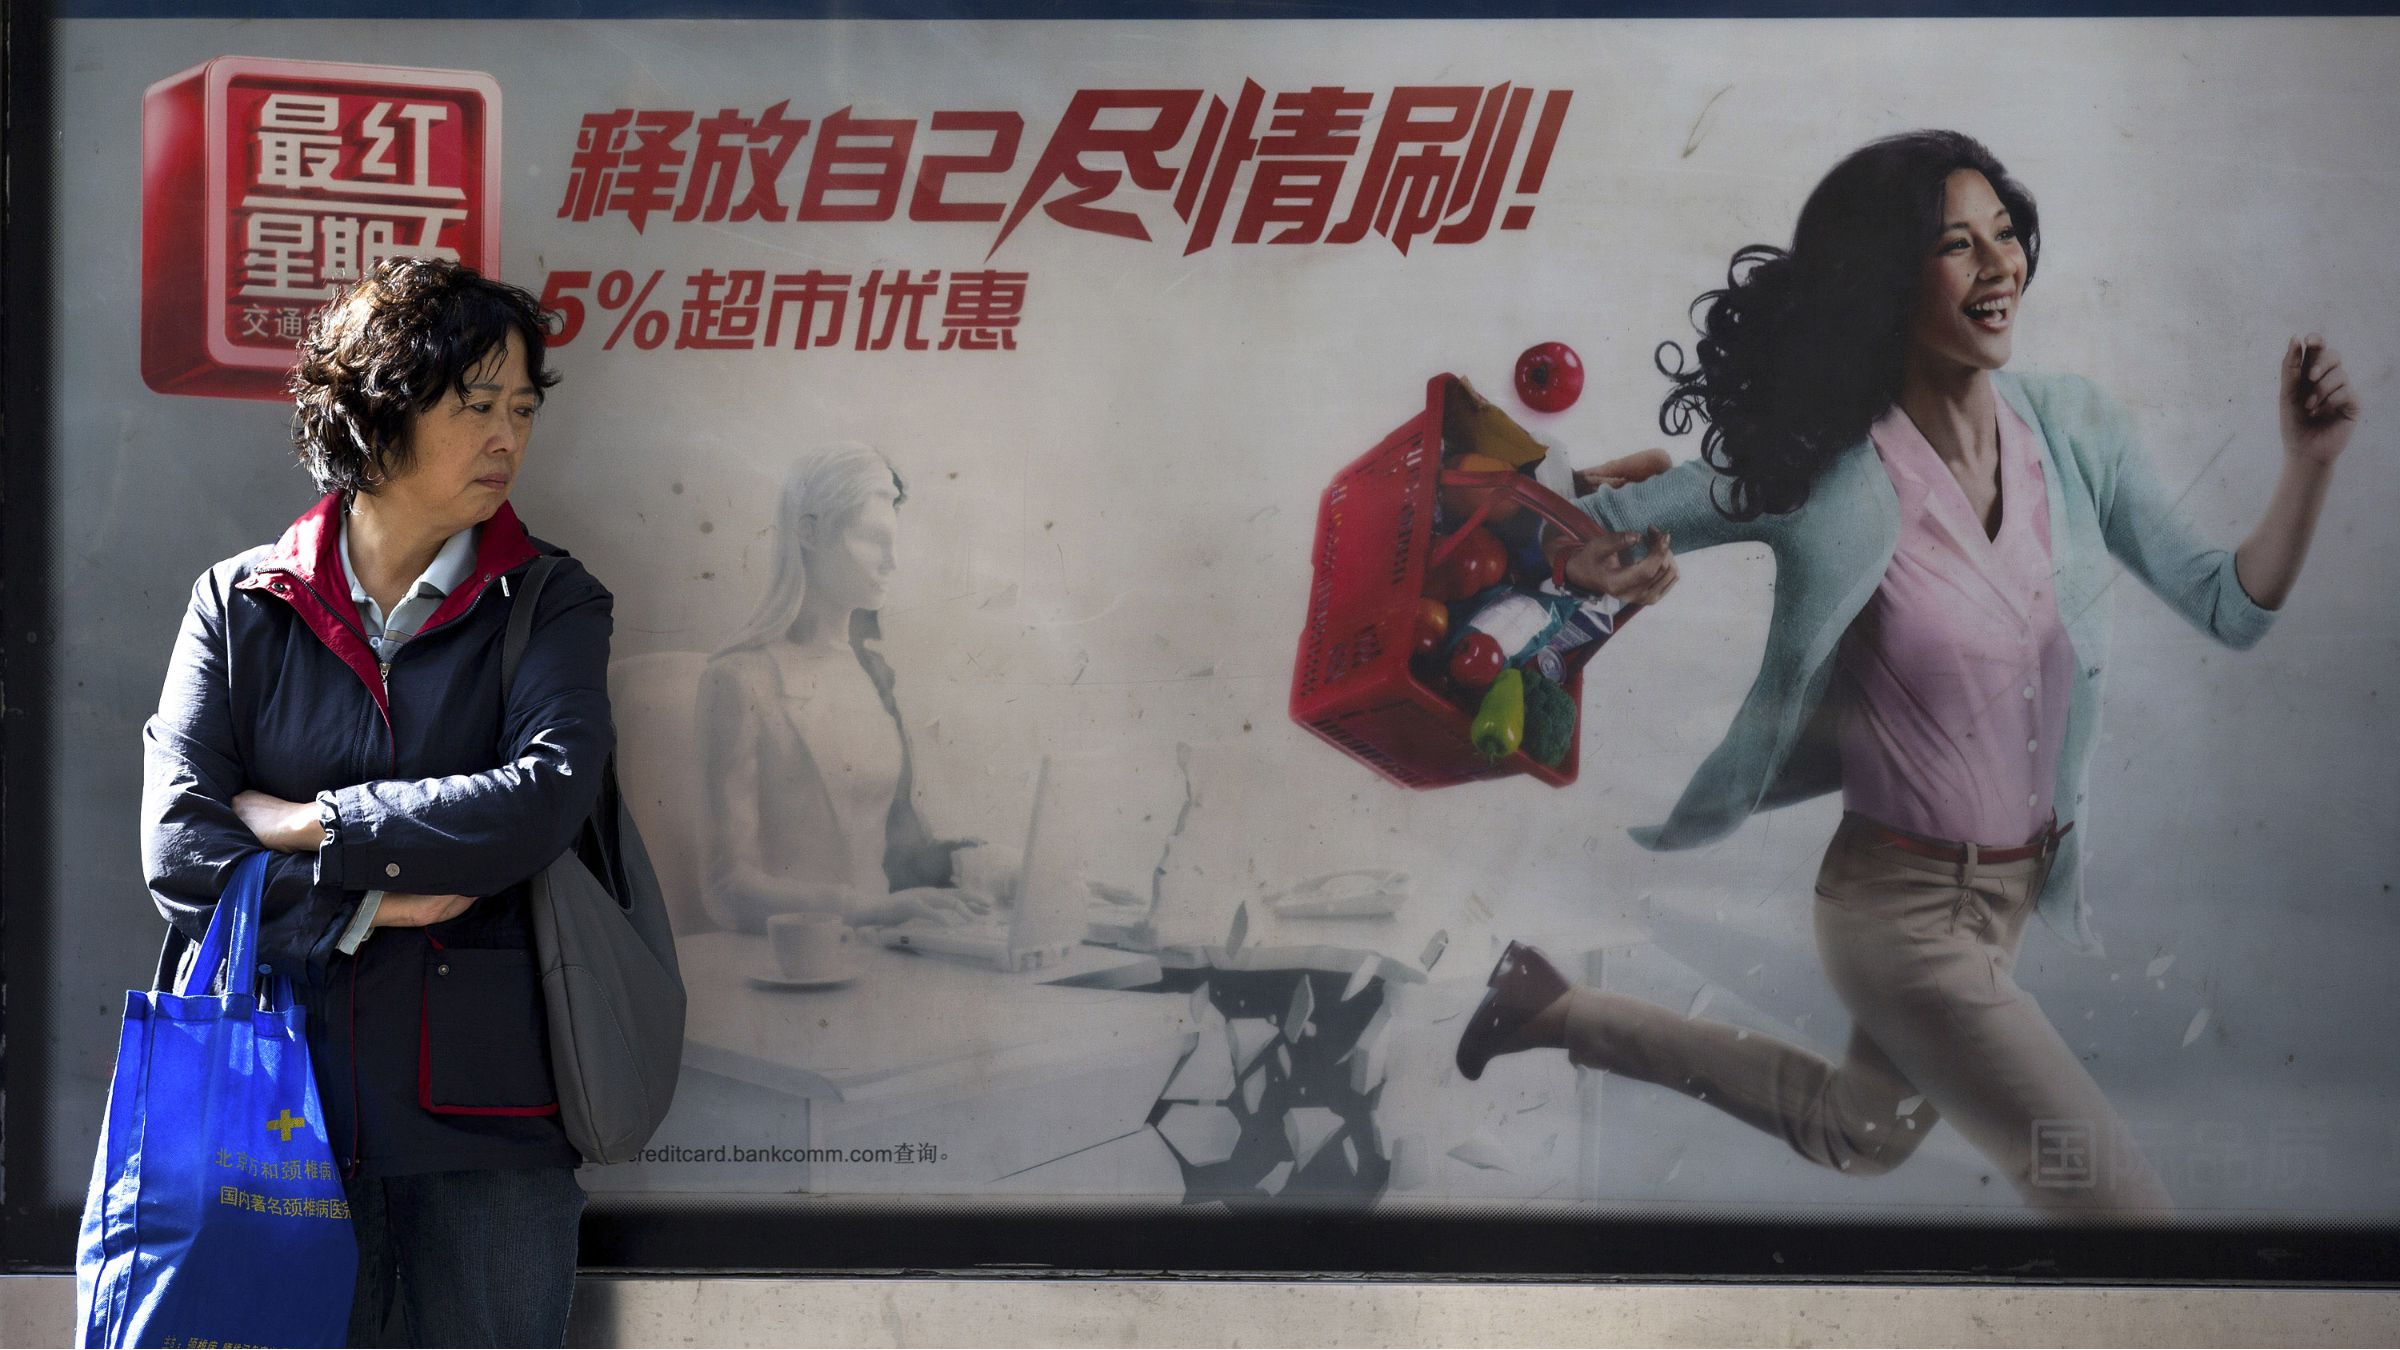 """China economy consumption consumer slowdown housing market savings A Chinese woman waits at a bus stand with a billboard advertised a bank's credit card promotion with words """"Release yourself, swap it as much as you can"""" in Beijing Thursday, Oct. 18, 2012. China's worst slump since the global financial crisis leveled out in the latest quarter and retail sales picked up in a sign an economic rebound is taking shape, adding to hopes for a global recovery. (AP Photo/Andy Wong"""